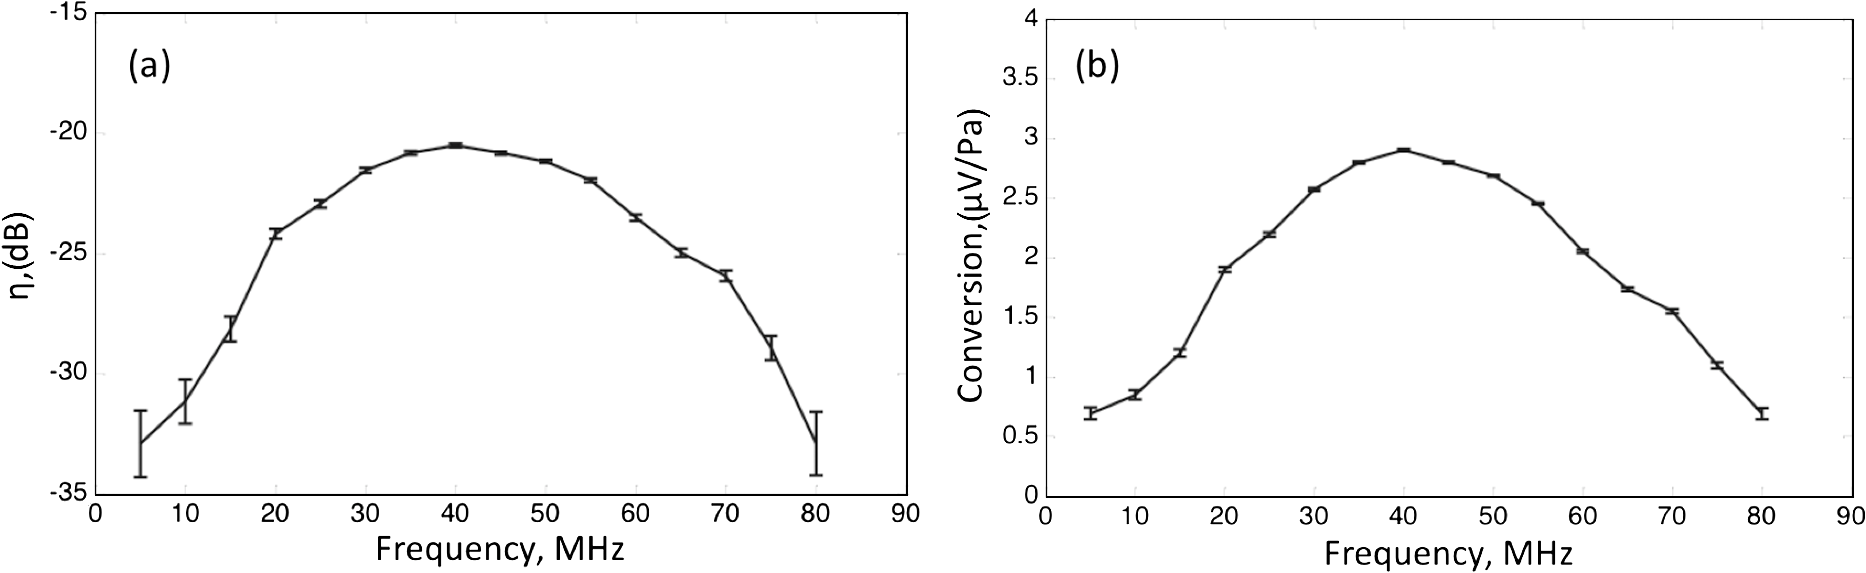 Noise Equivalent Sensitivity Of Photoacoustics Electronics Technology Pink Flicker Generator Circuit A The Transducer Efficiency In Decibels As Function Frequency B Conversion Factor Between Incident Pressure And Induced Voltage